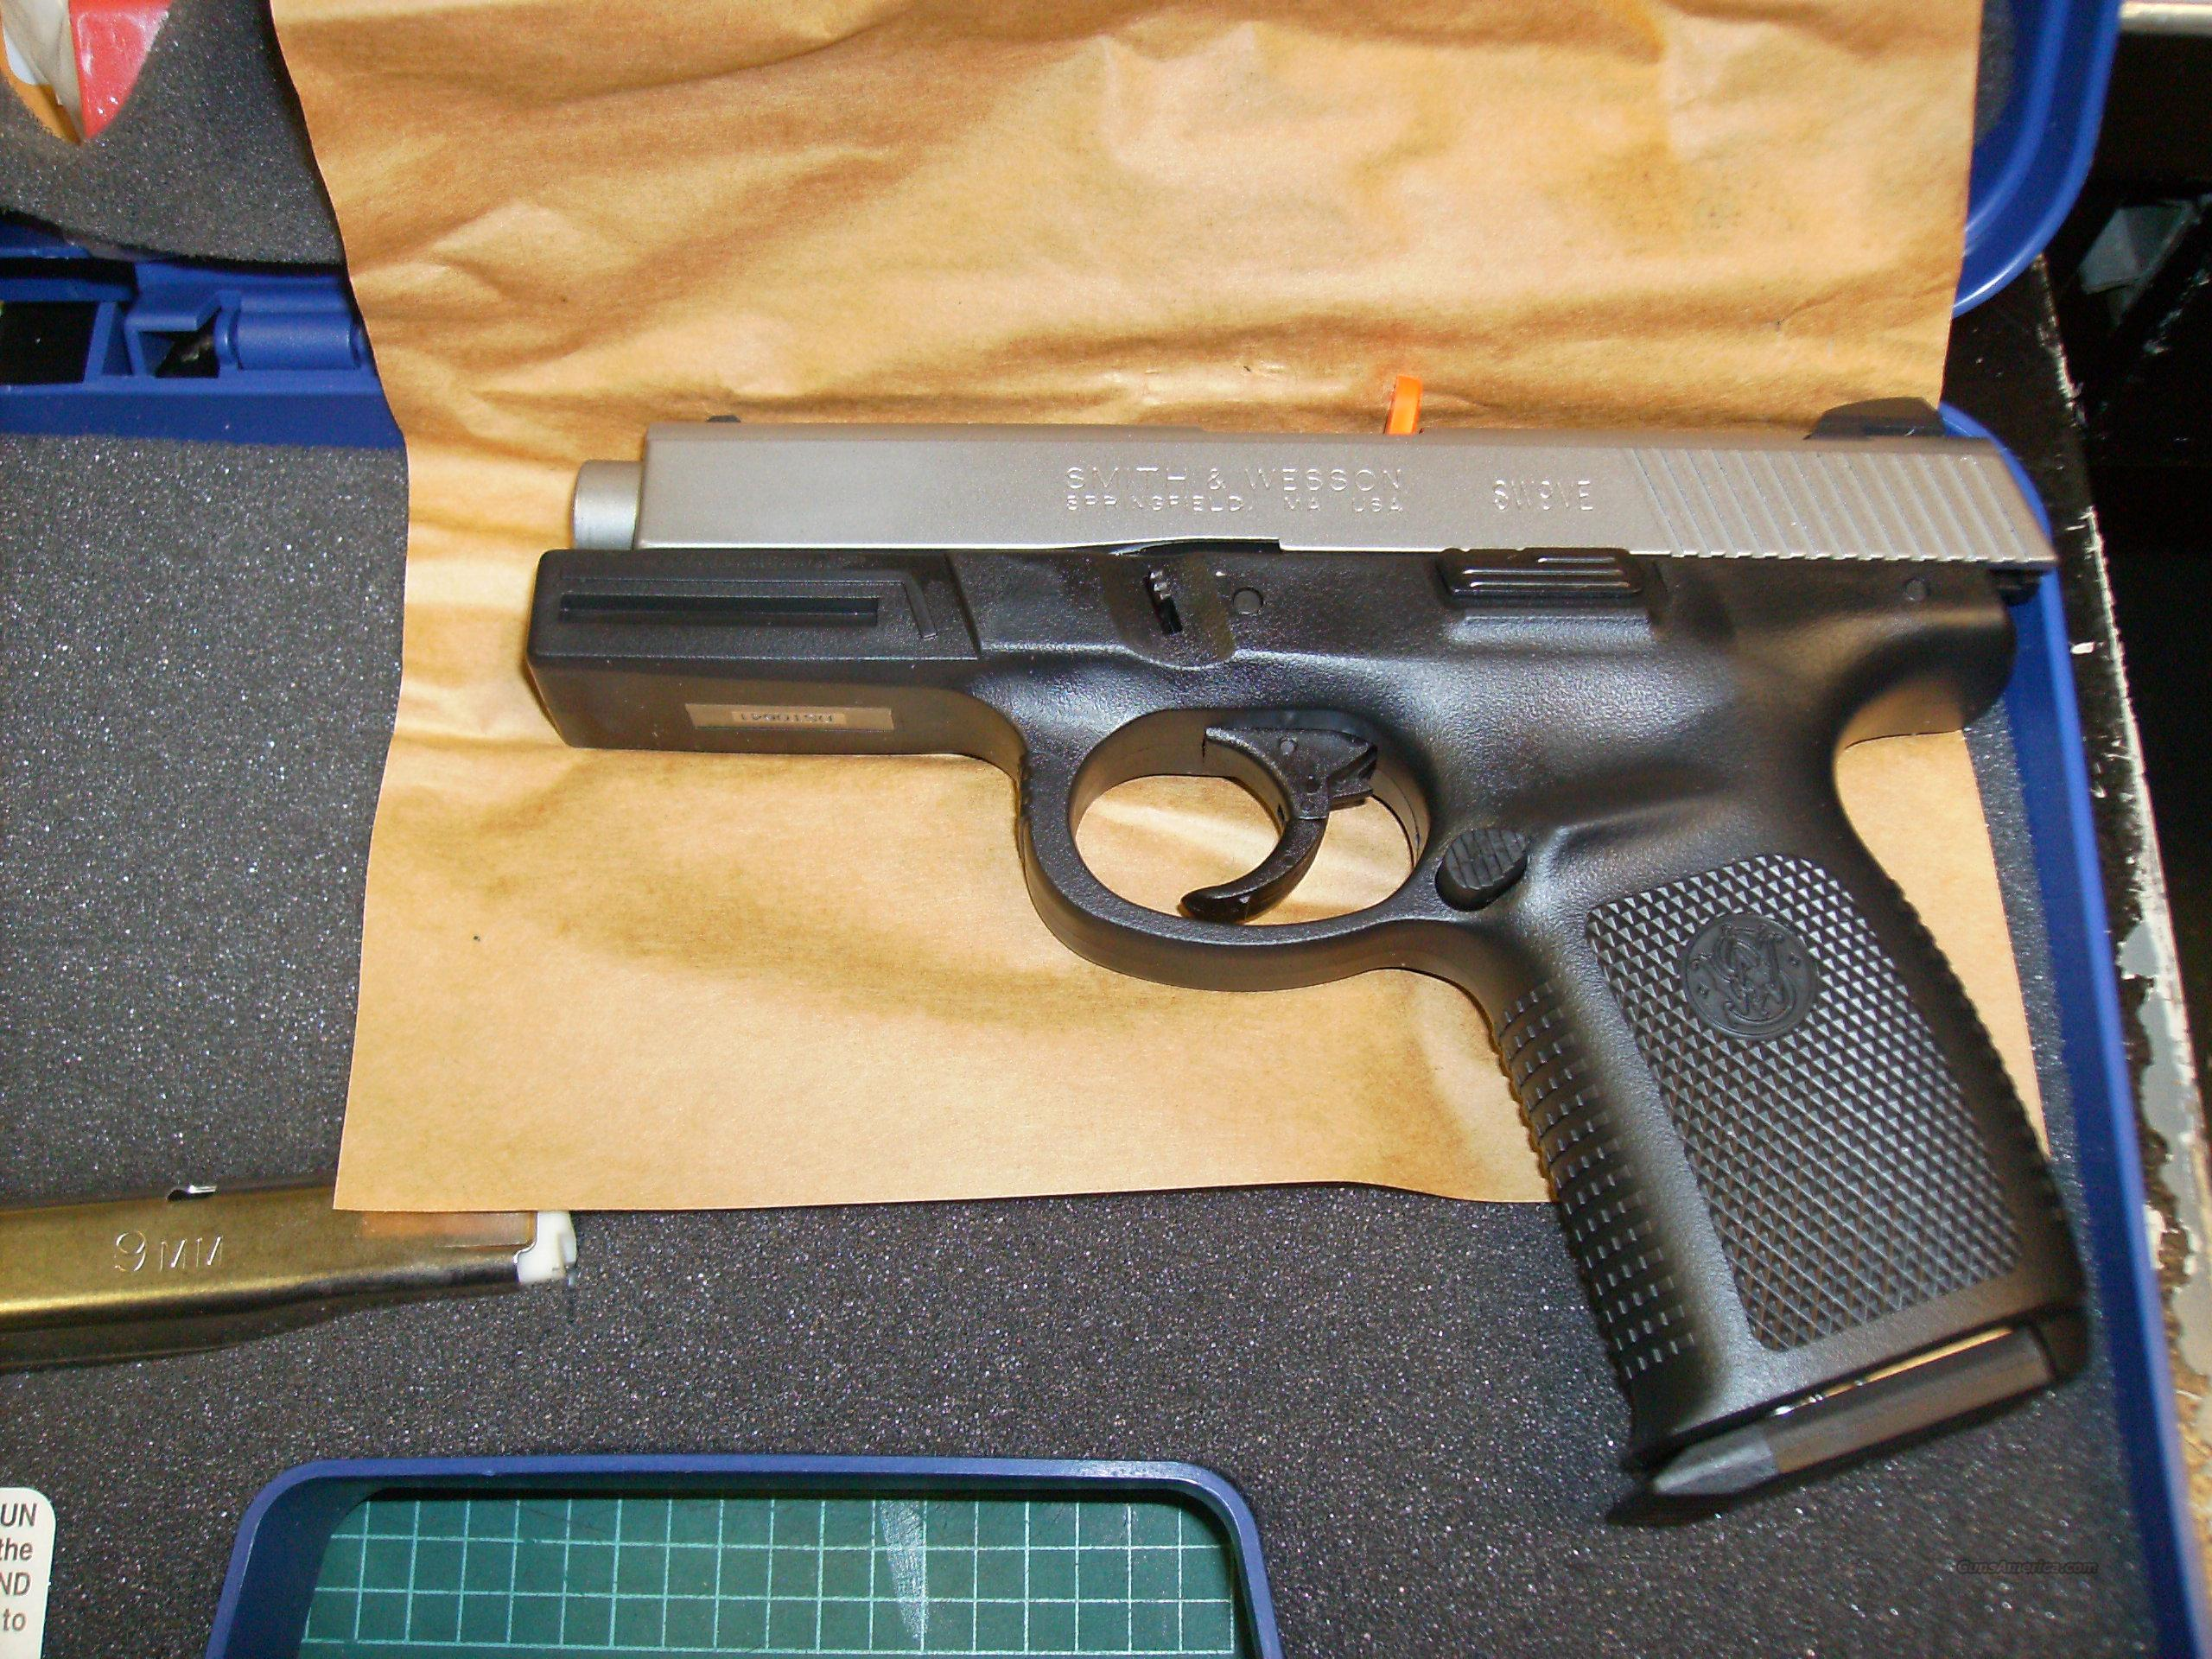 Smith and Wesson SW9VE Sigma 9MM  Guns > Pistols > Smith & Wesson Pistols - Autos > Polymer Frame